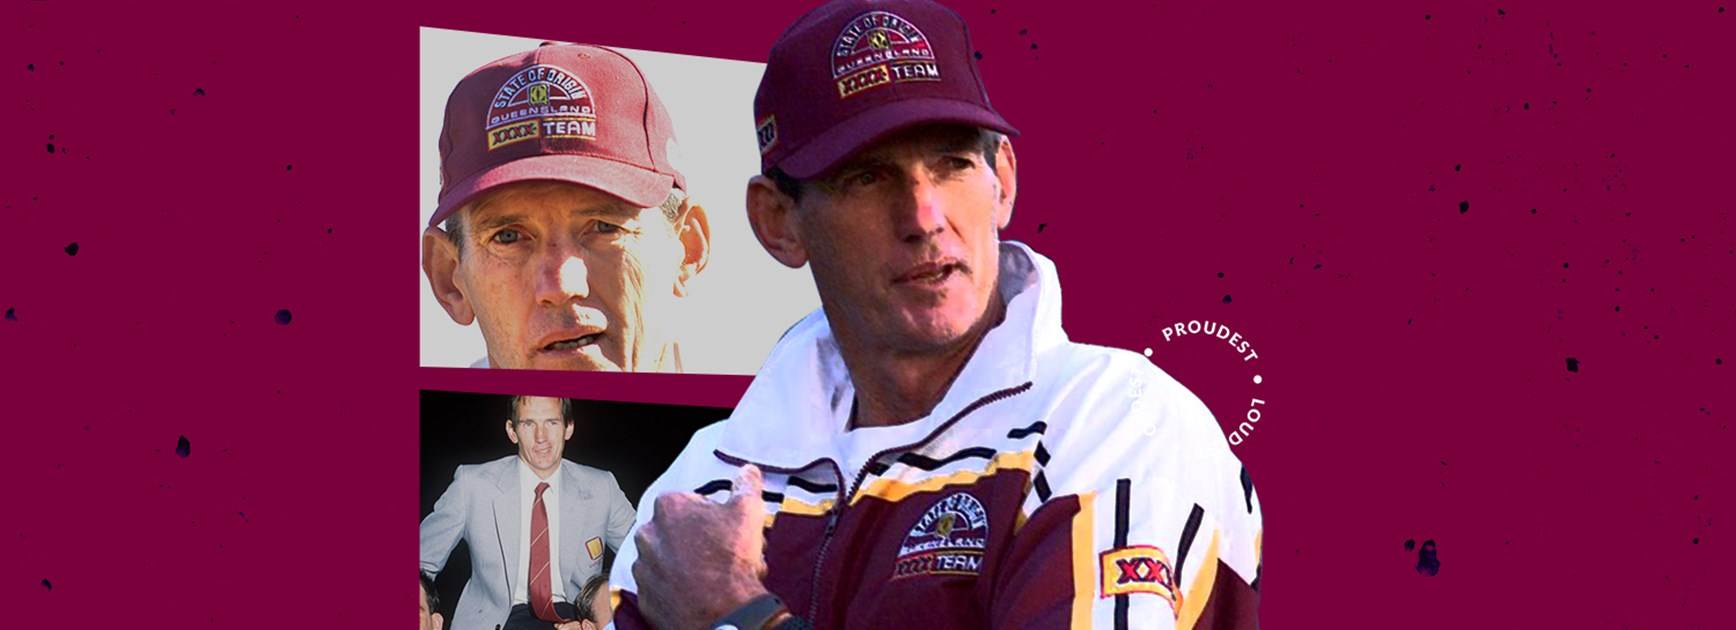 Rabbitohs Congratulate Wayne Bennett on Queensland State of Origin Head Coaching Appointment